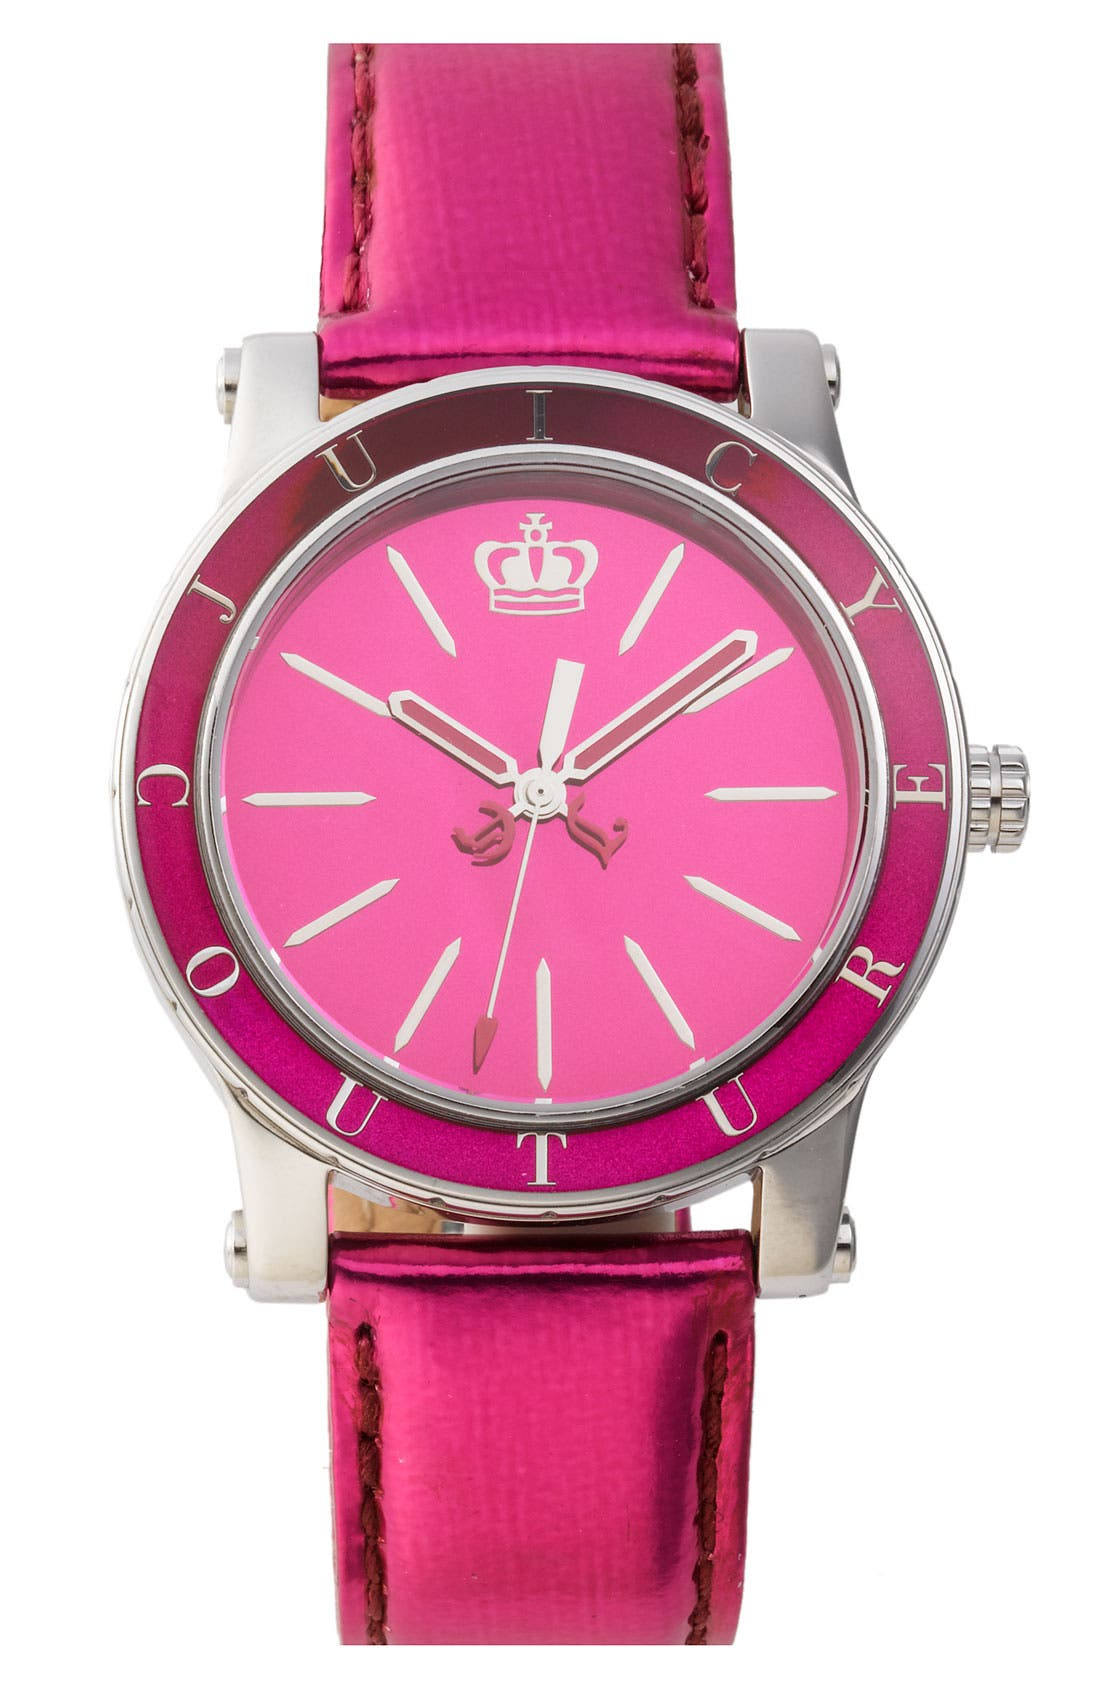 Main Image - Juicy Couture 'HRH' Mirror Dial Watch